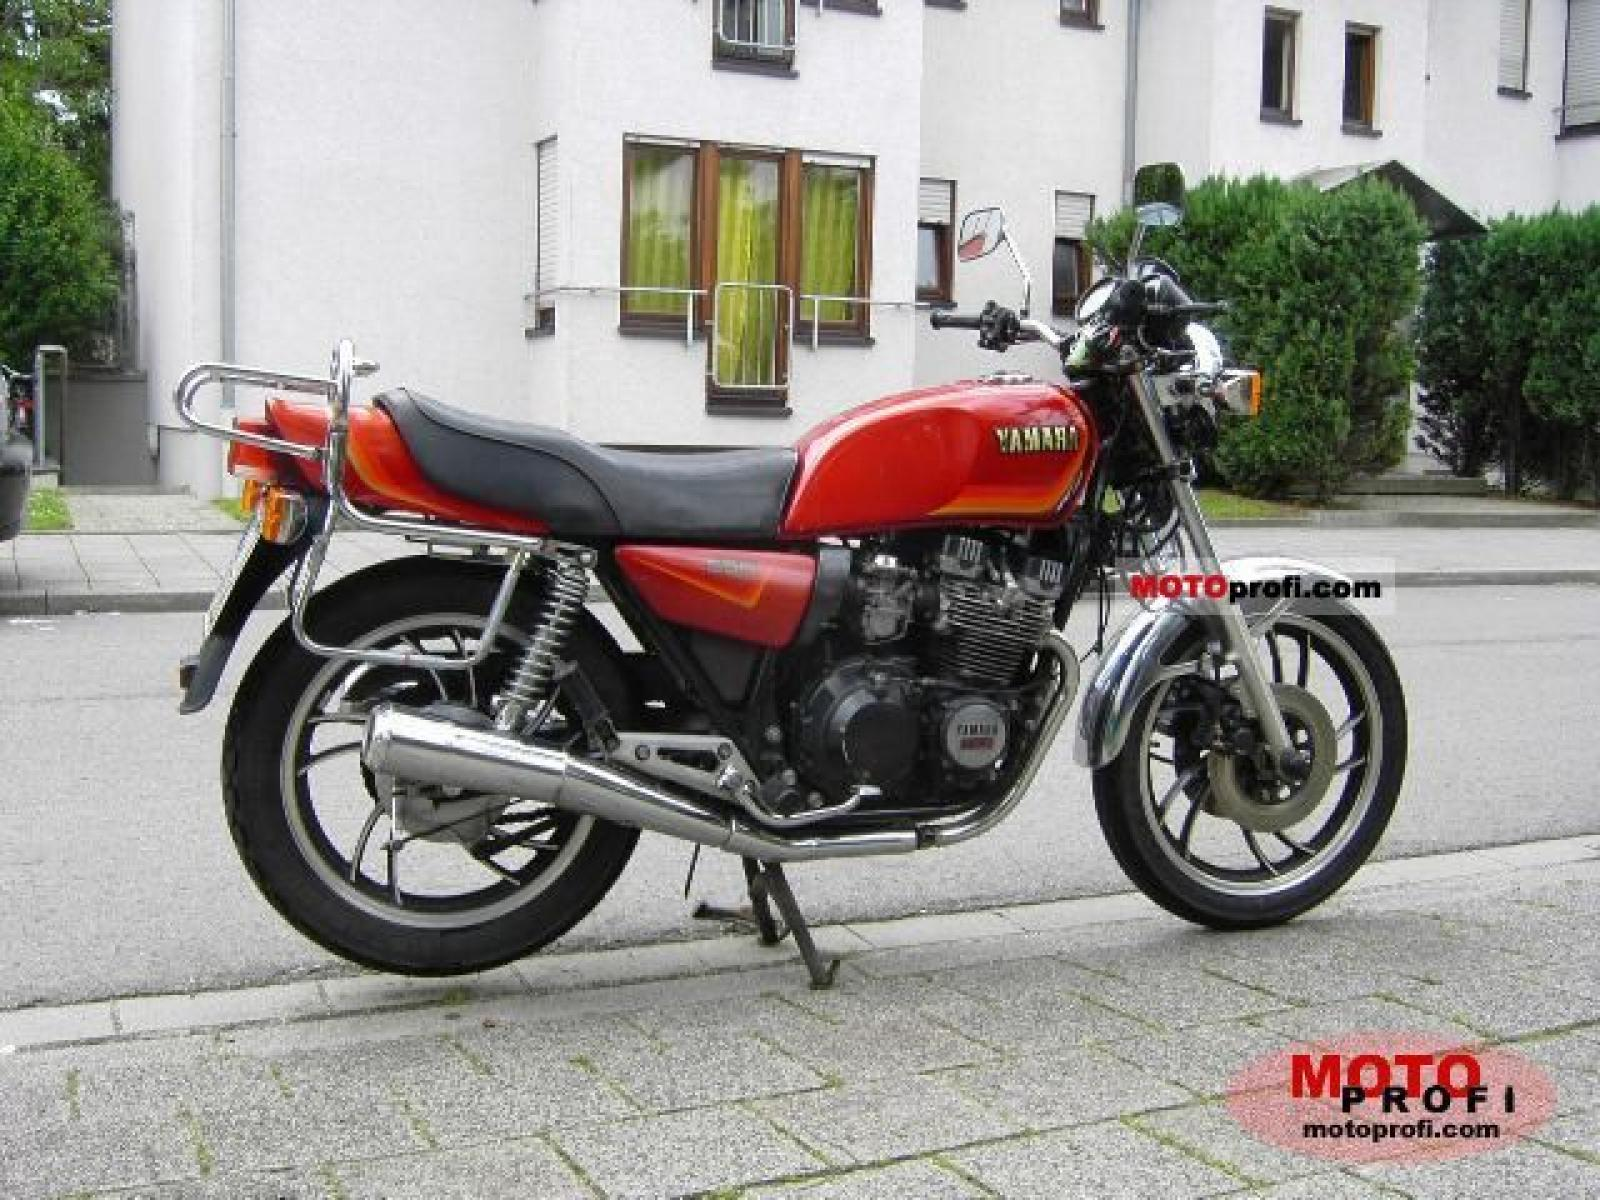 Yamaha Xj 900 Wiring Diagram Schematic Diagrams Xj550 Database Vx Old Fashioned 1981 Seca